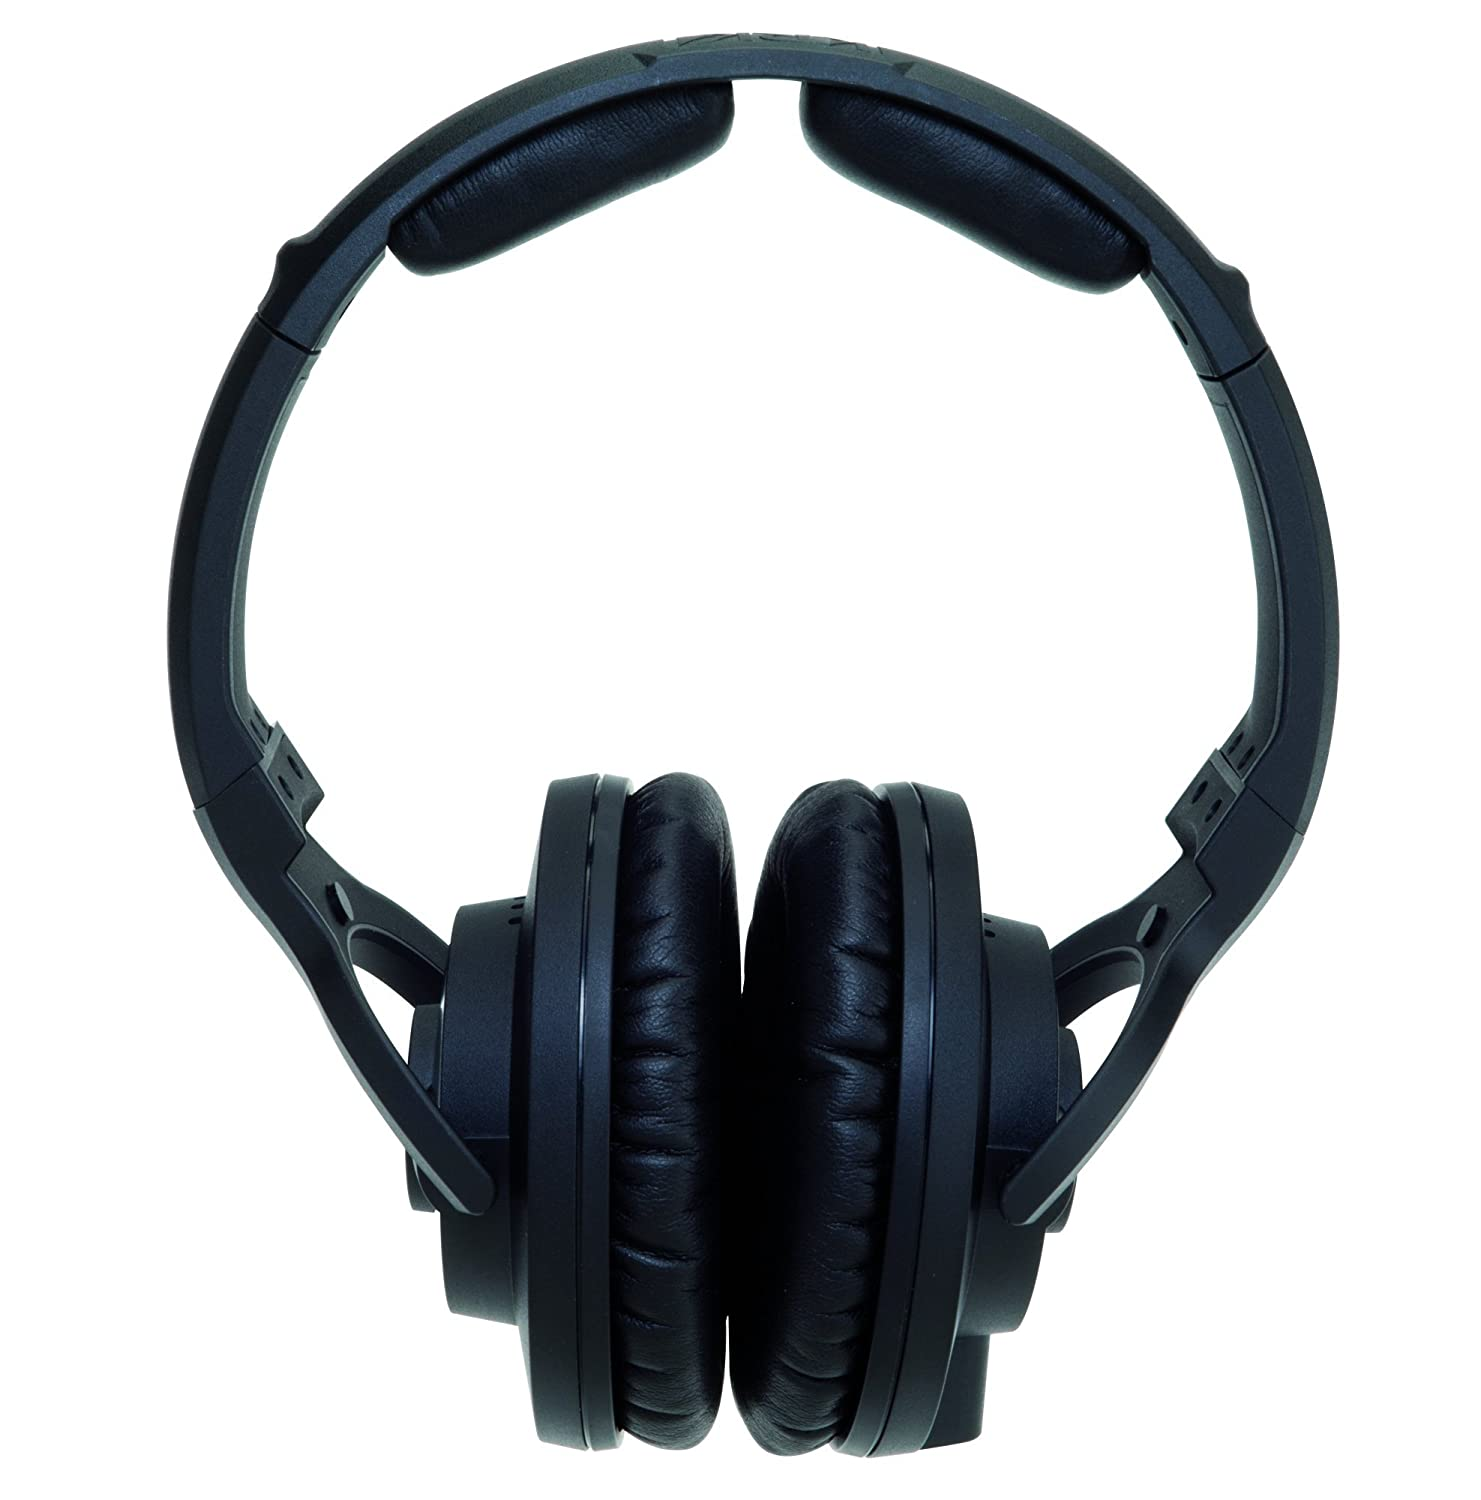 KRK PROFESSIONAL REFERENCE HEADPHONES KNS8400 【国内正規品】 B004ARUO2S